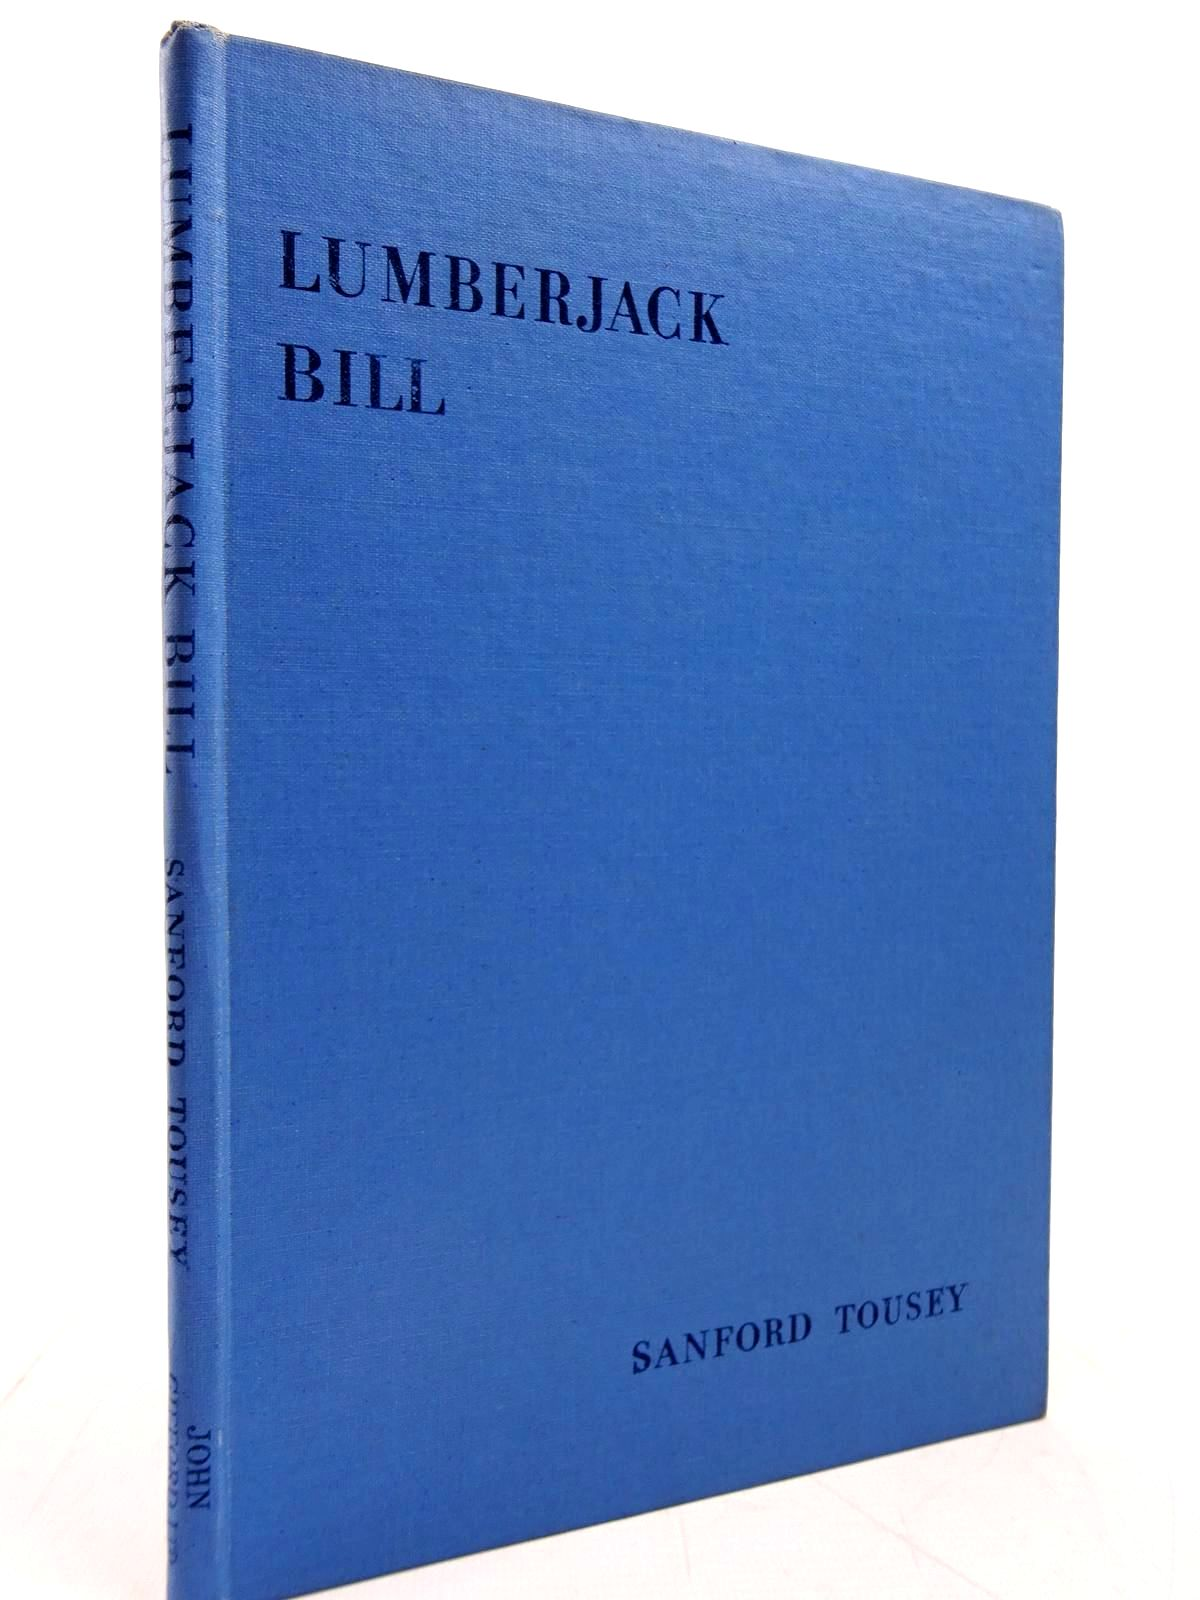 Photo of LUMBERJACK BILL written by Tousey, Sanford published by John Gifford Ltd. (STOCK CODE: 2131032)  for sale by Stella & Rose's Books